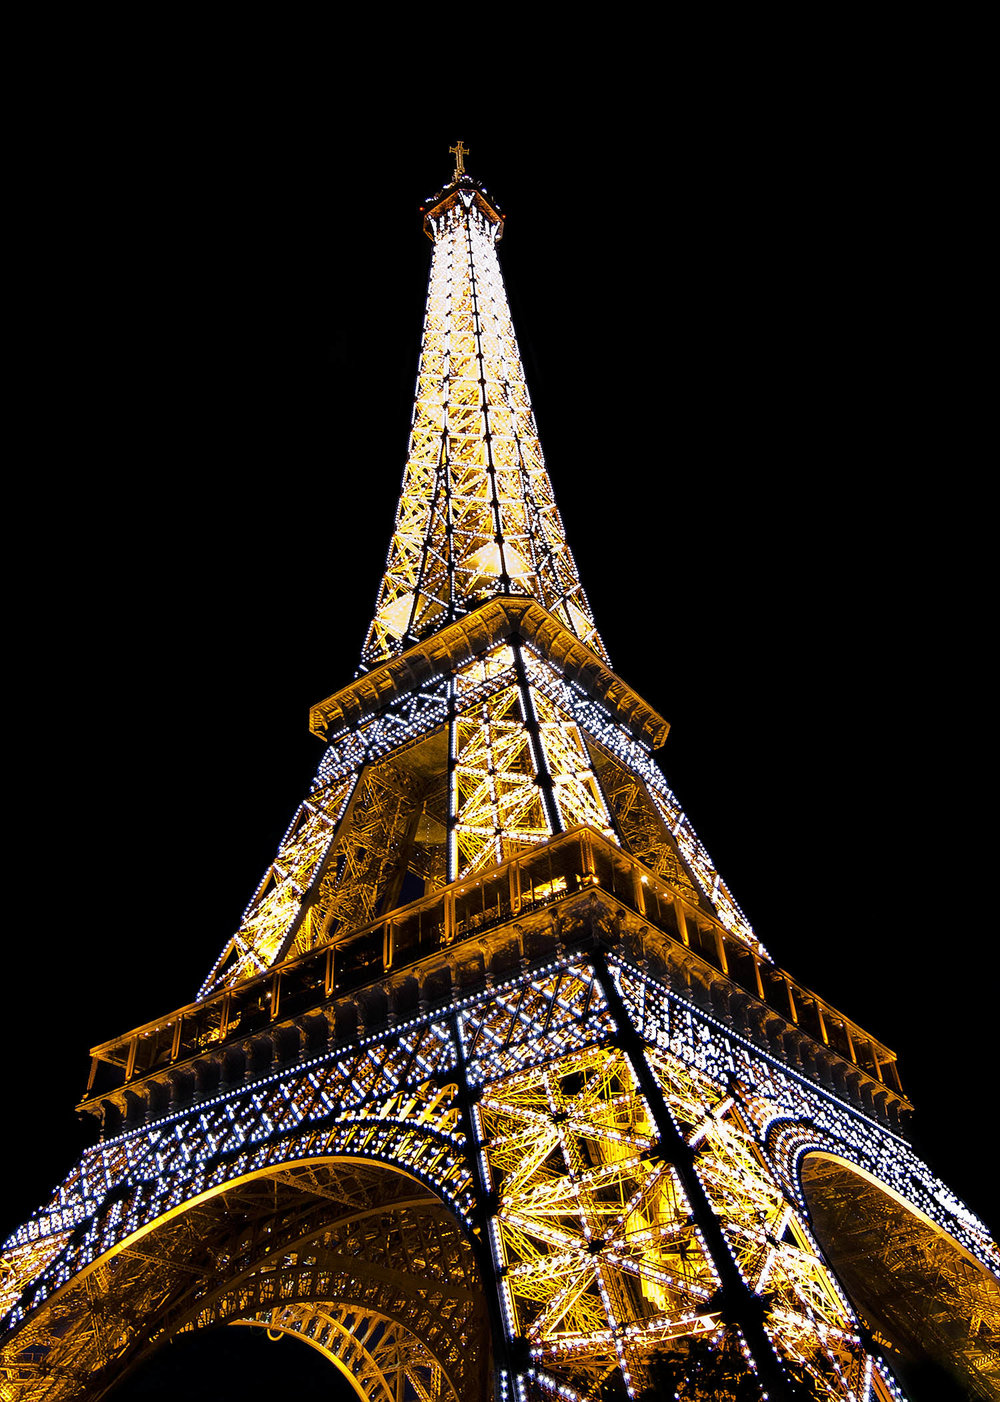 Eiffel Tower Print.jpg